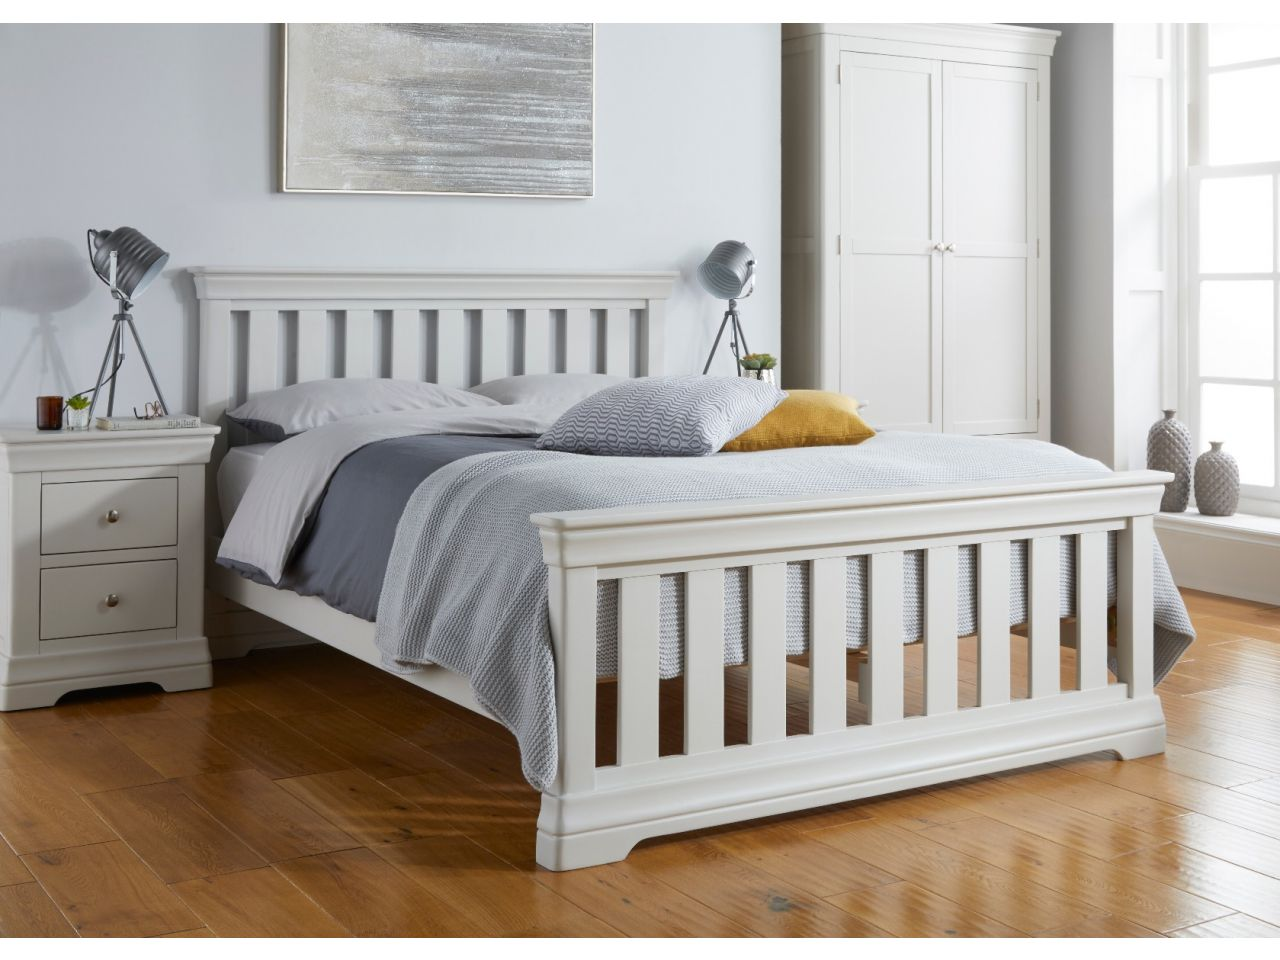 Toulouse Grey Painted 5 Foot Slatted King Size Bed Free Fast Delivery Top Furniture